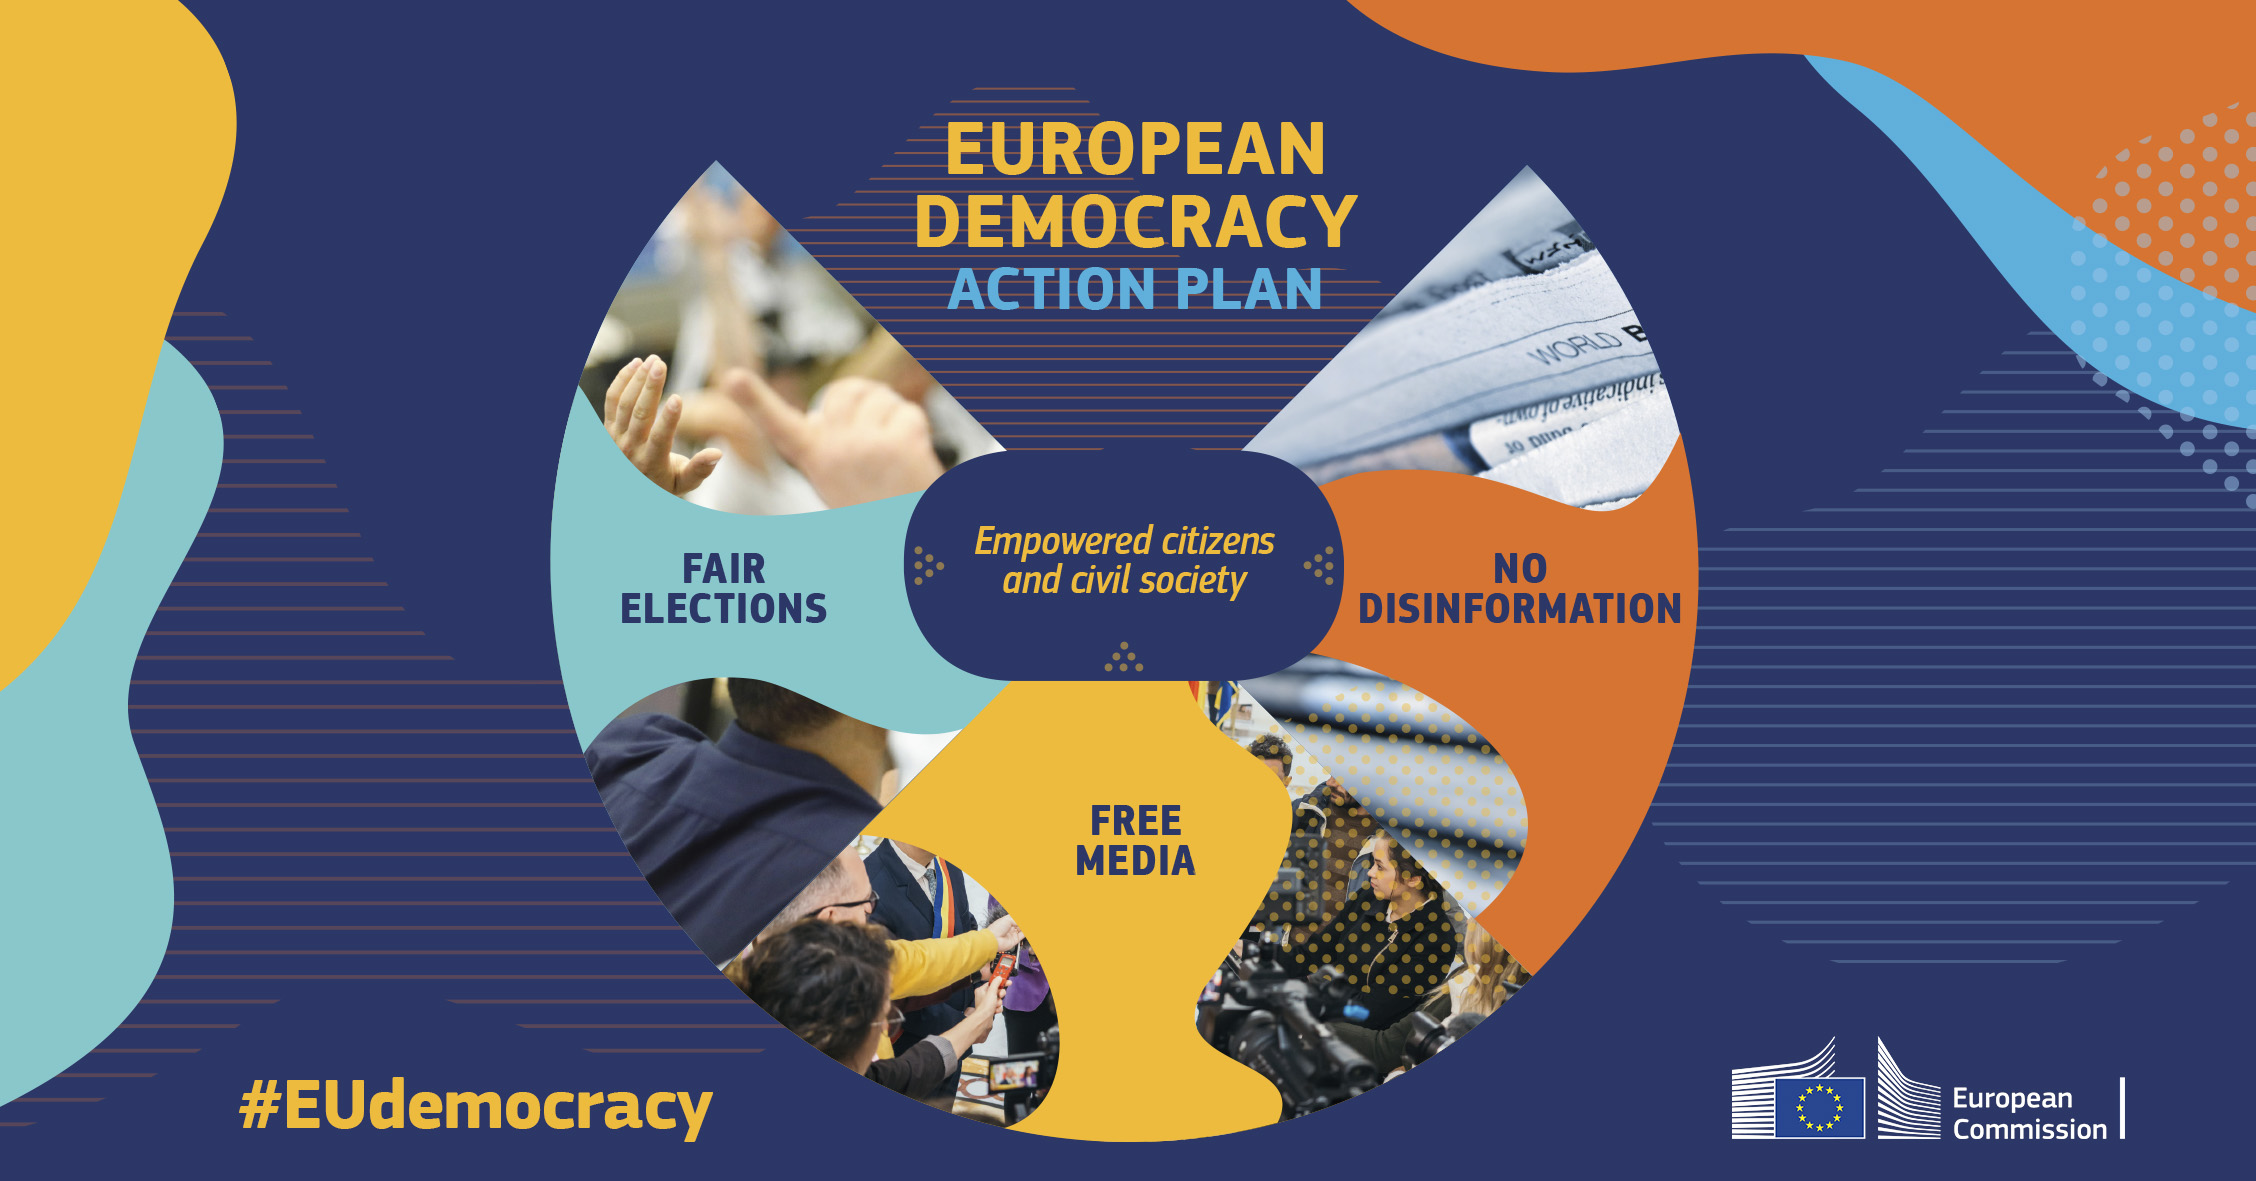 European democracy action plan